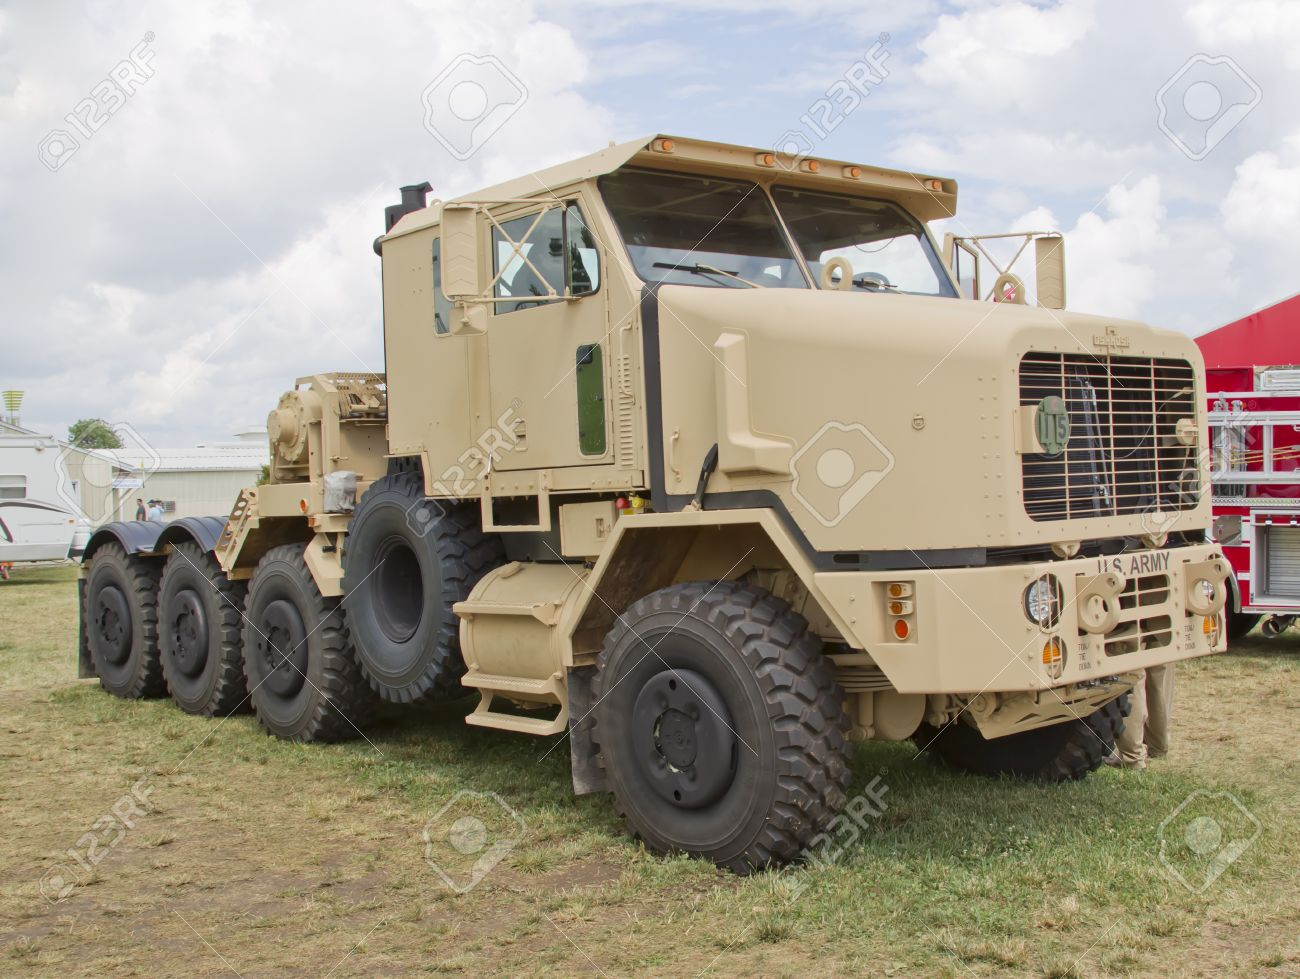 oshkosh wi july 27 front view of an oshkosh corp army truck vehicle